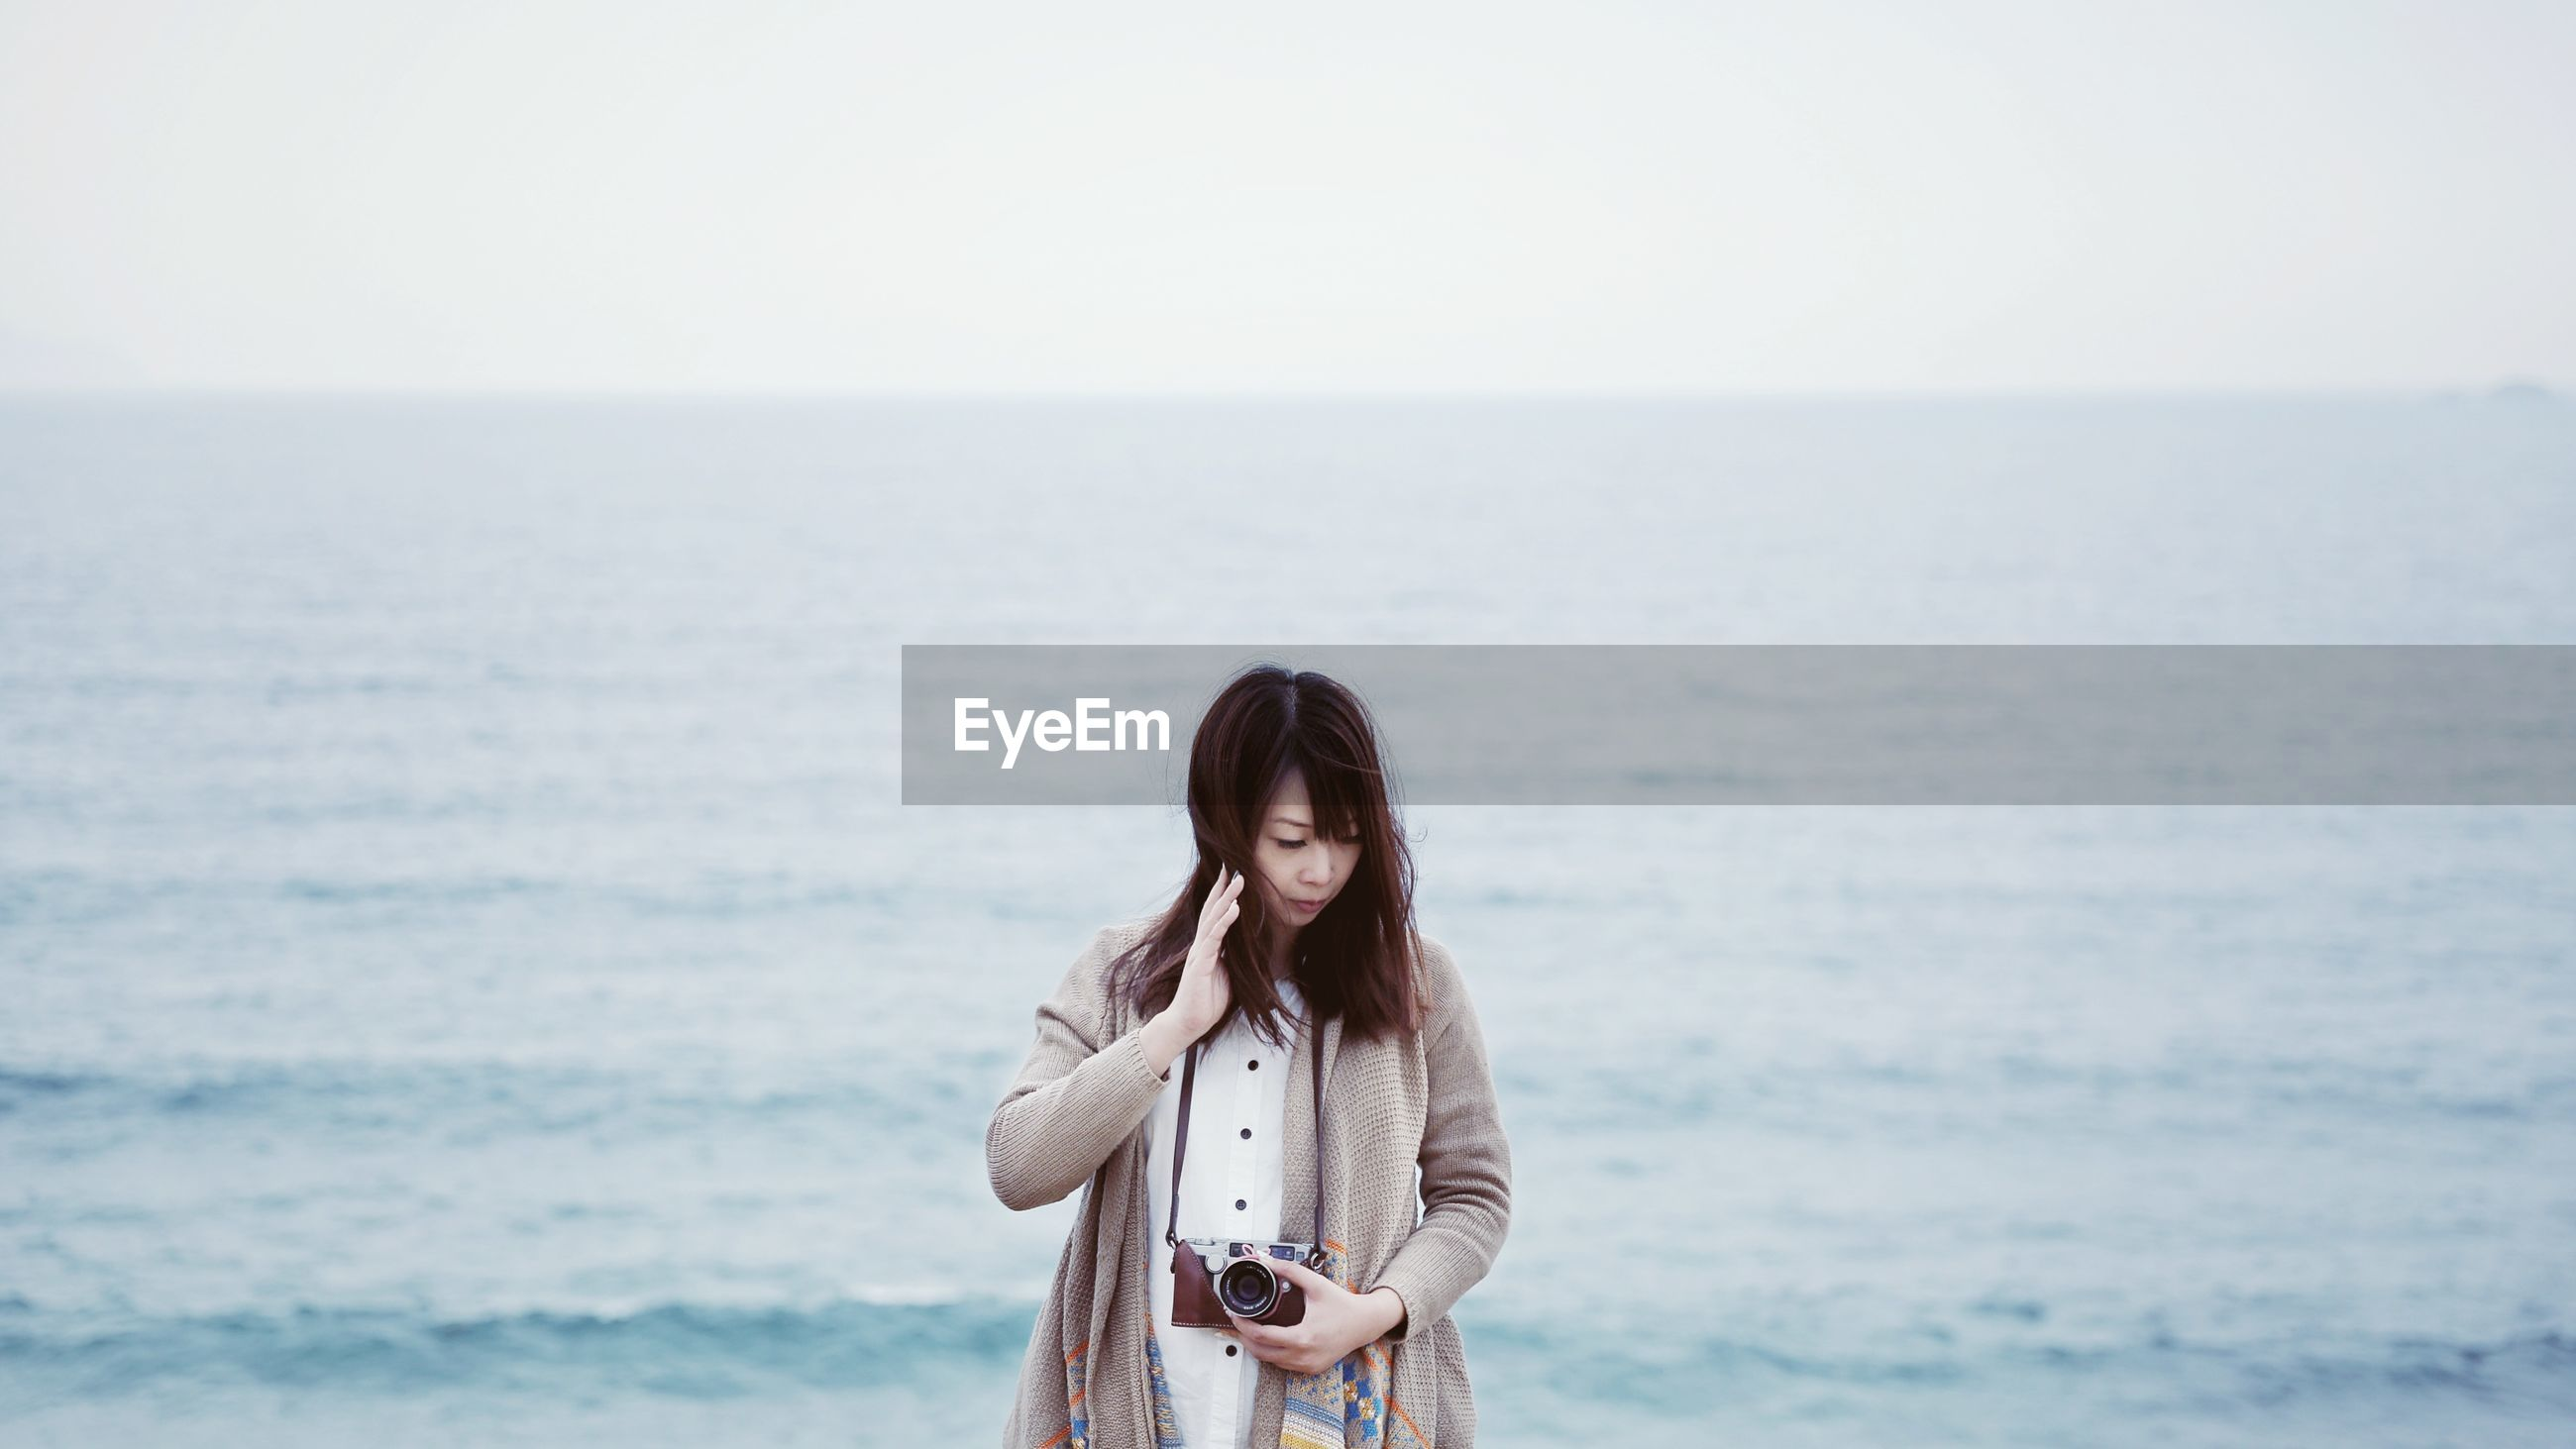 Woman looking down while holding camera against sea at beach